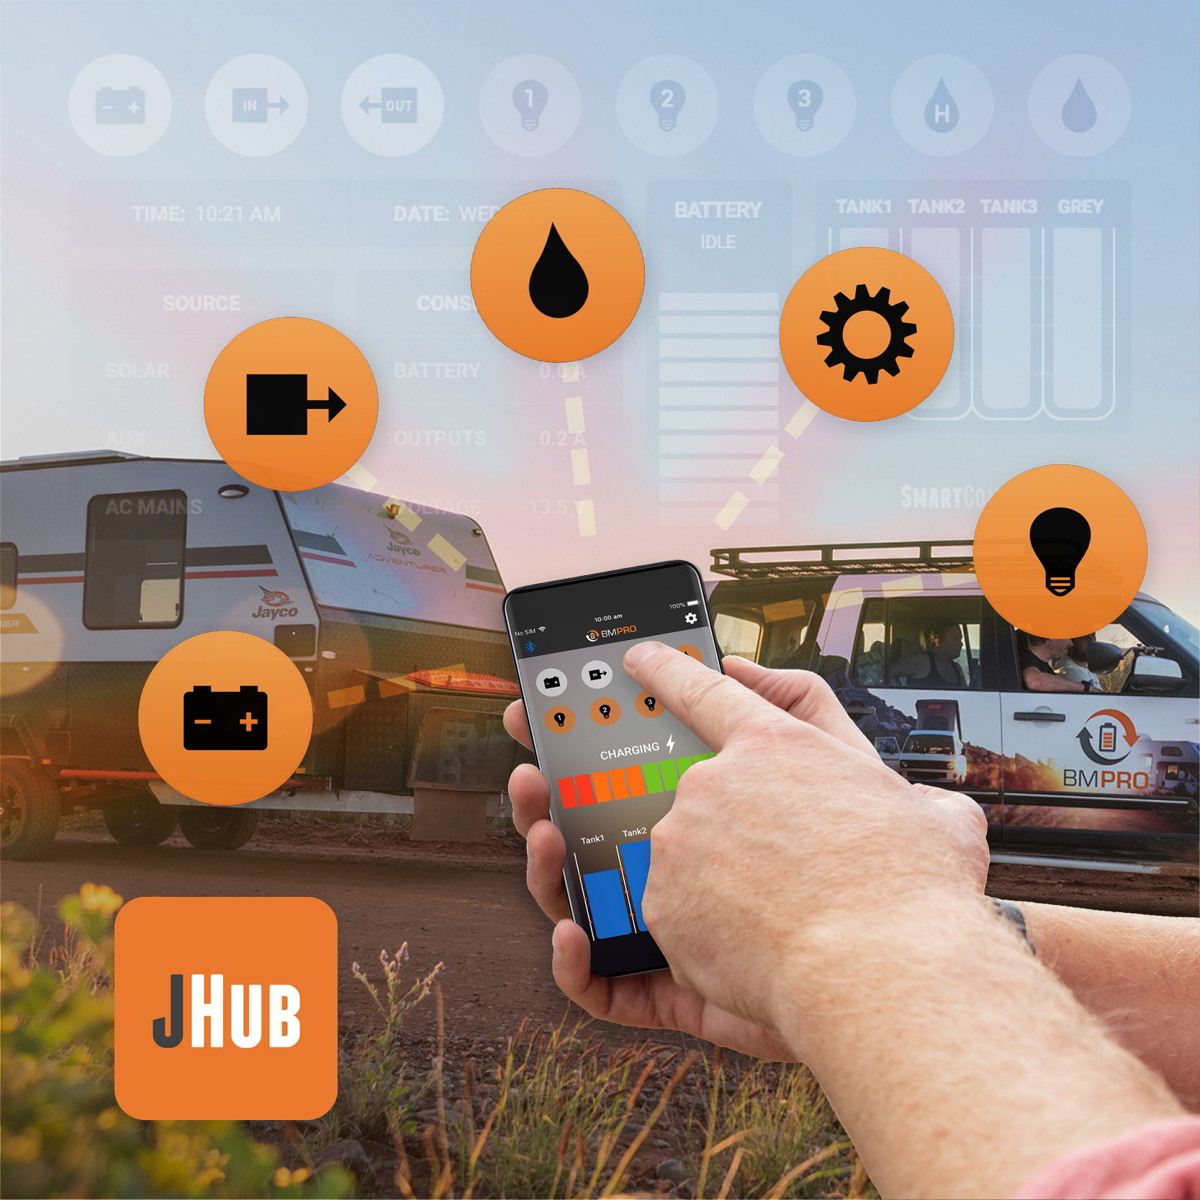 JHub is a complete 12V power management system for Jayco caravans